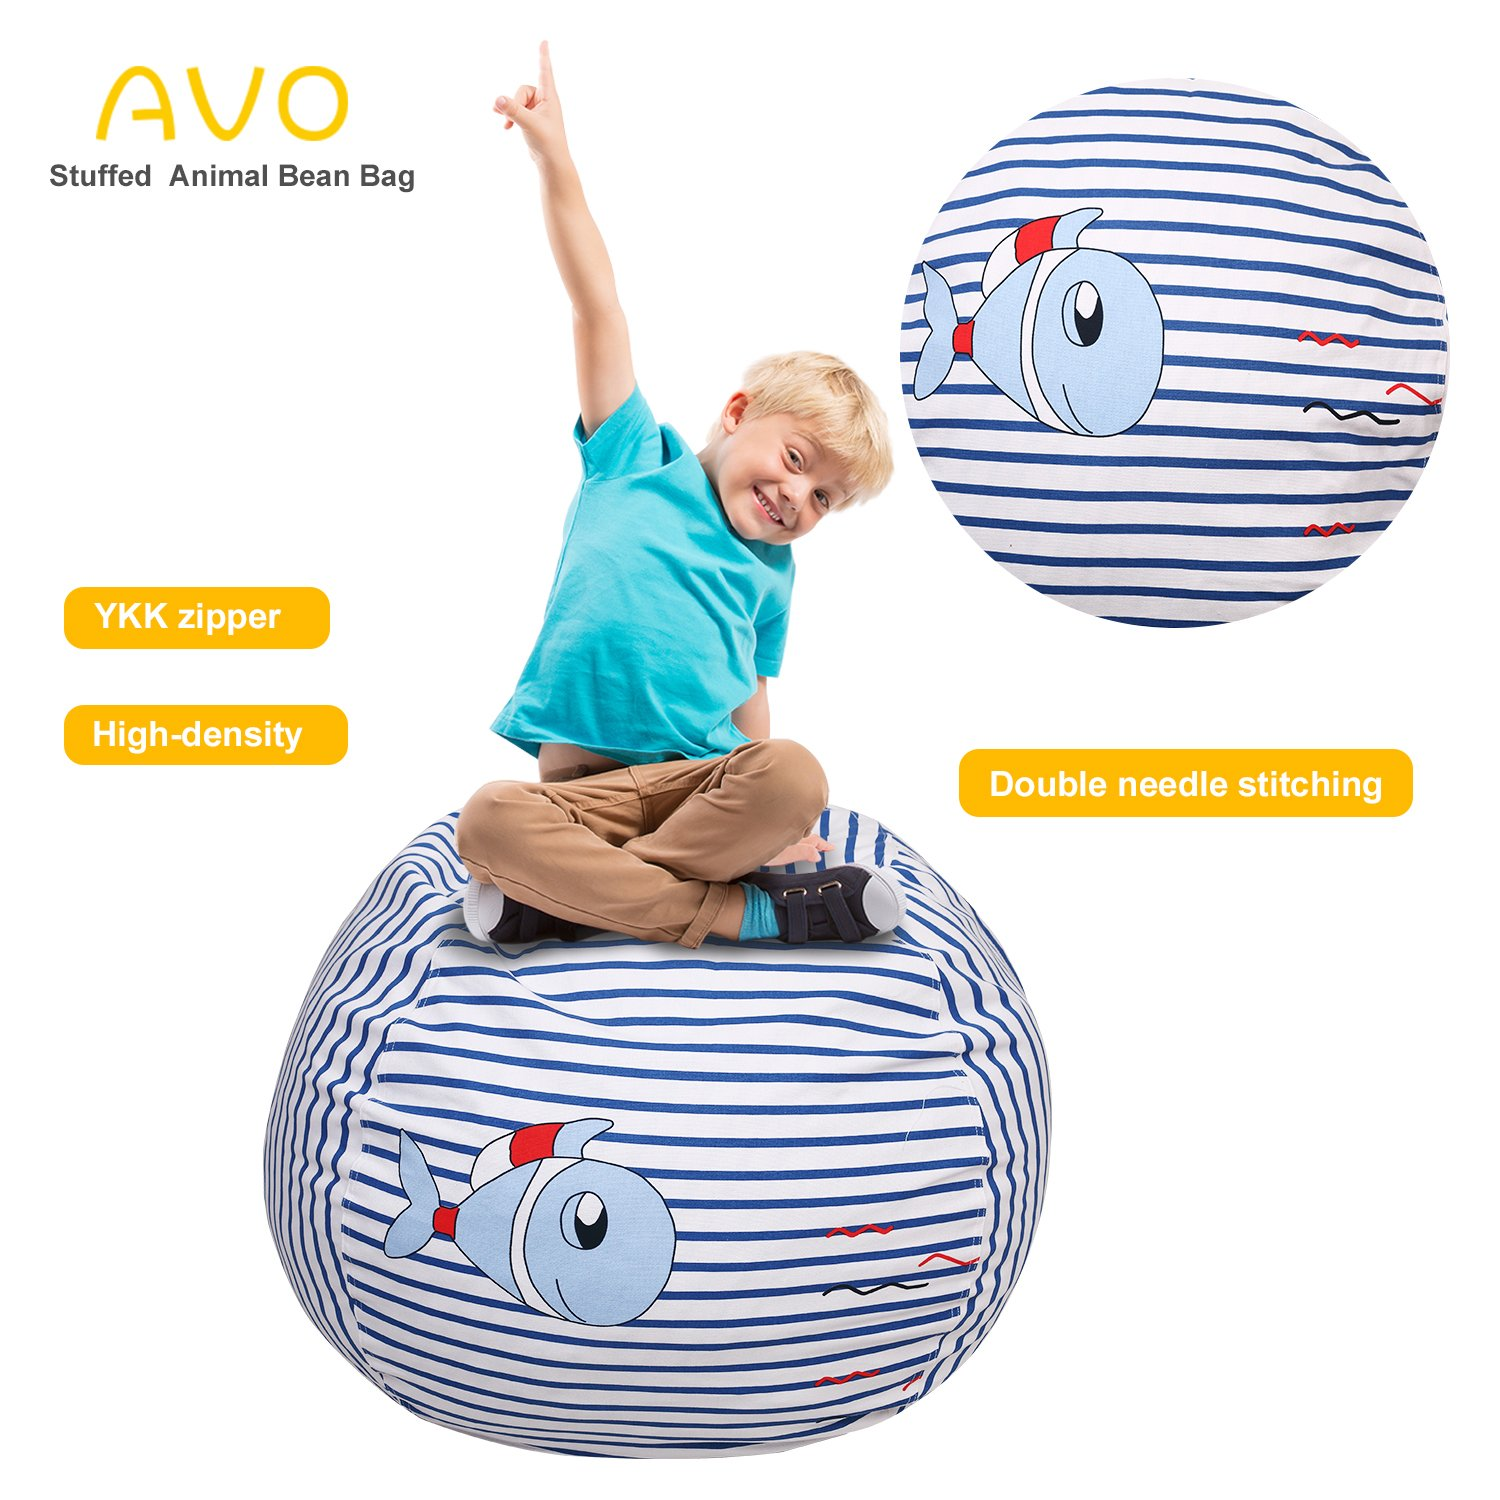 Extra-Large Stuffed Animal Storage Bean Bag-100% high-density(Kids Bean Bag 38'', fish) by AUO (Image #1)